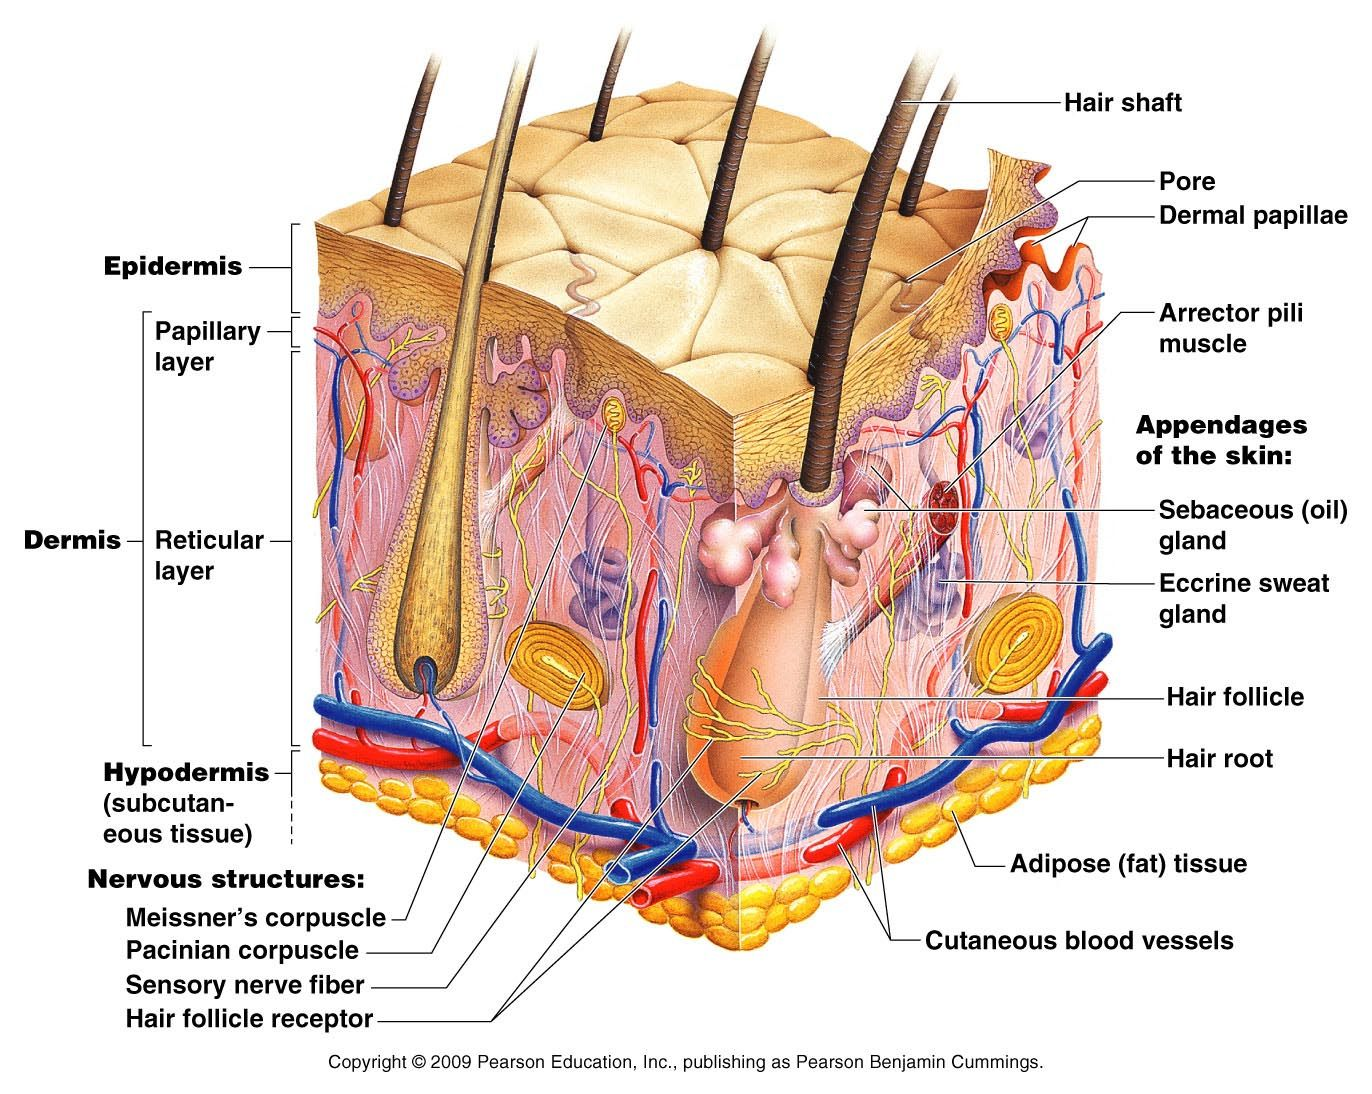 Skin Structure Diagram Labelled Diagram Skin Structure - Diagram Body Of  Anatomy | Skin anatomy, Skin structure, EpidermisPinterest